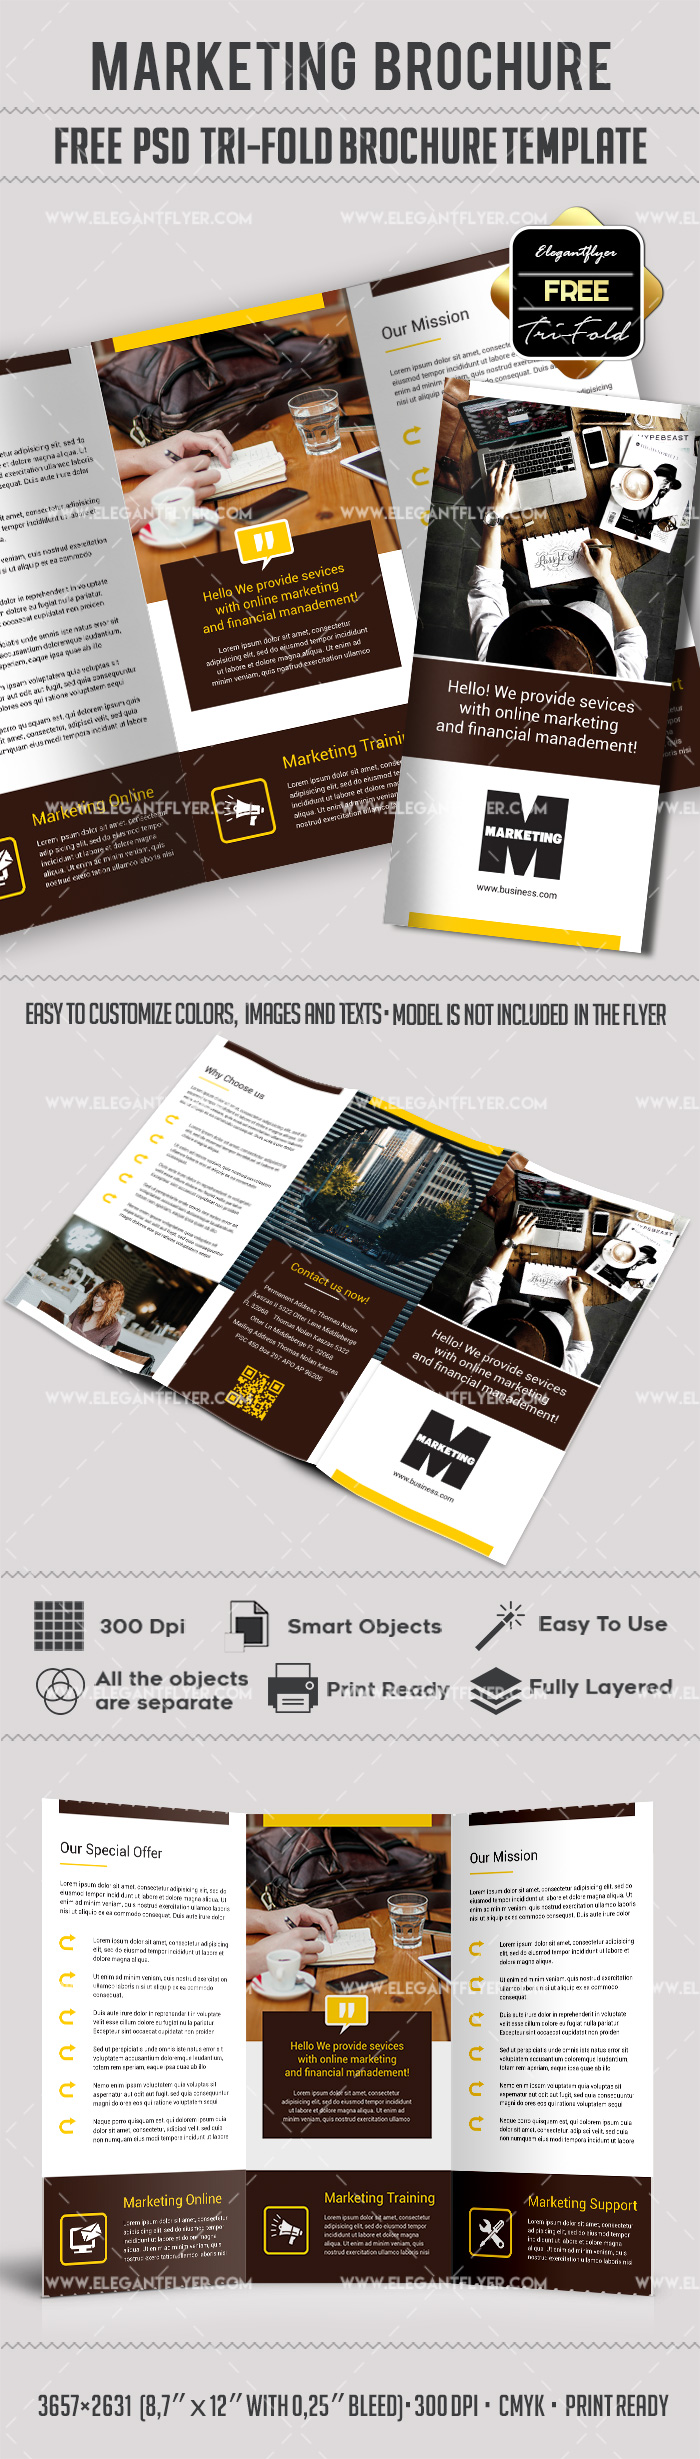 Marketing free tri fold psd brochure template by for Brochure template online